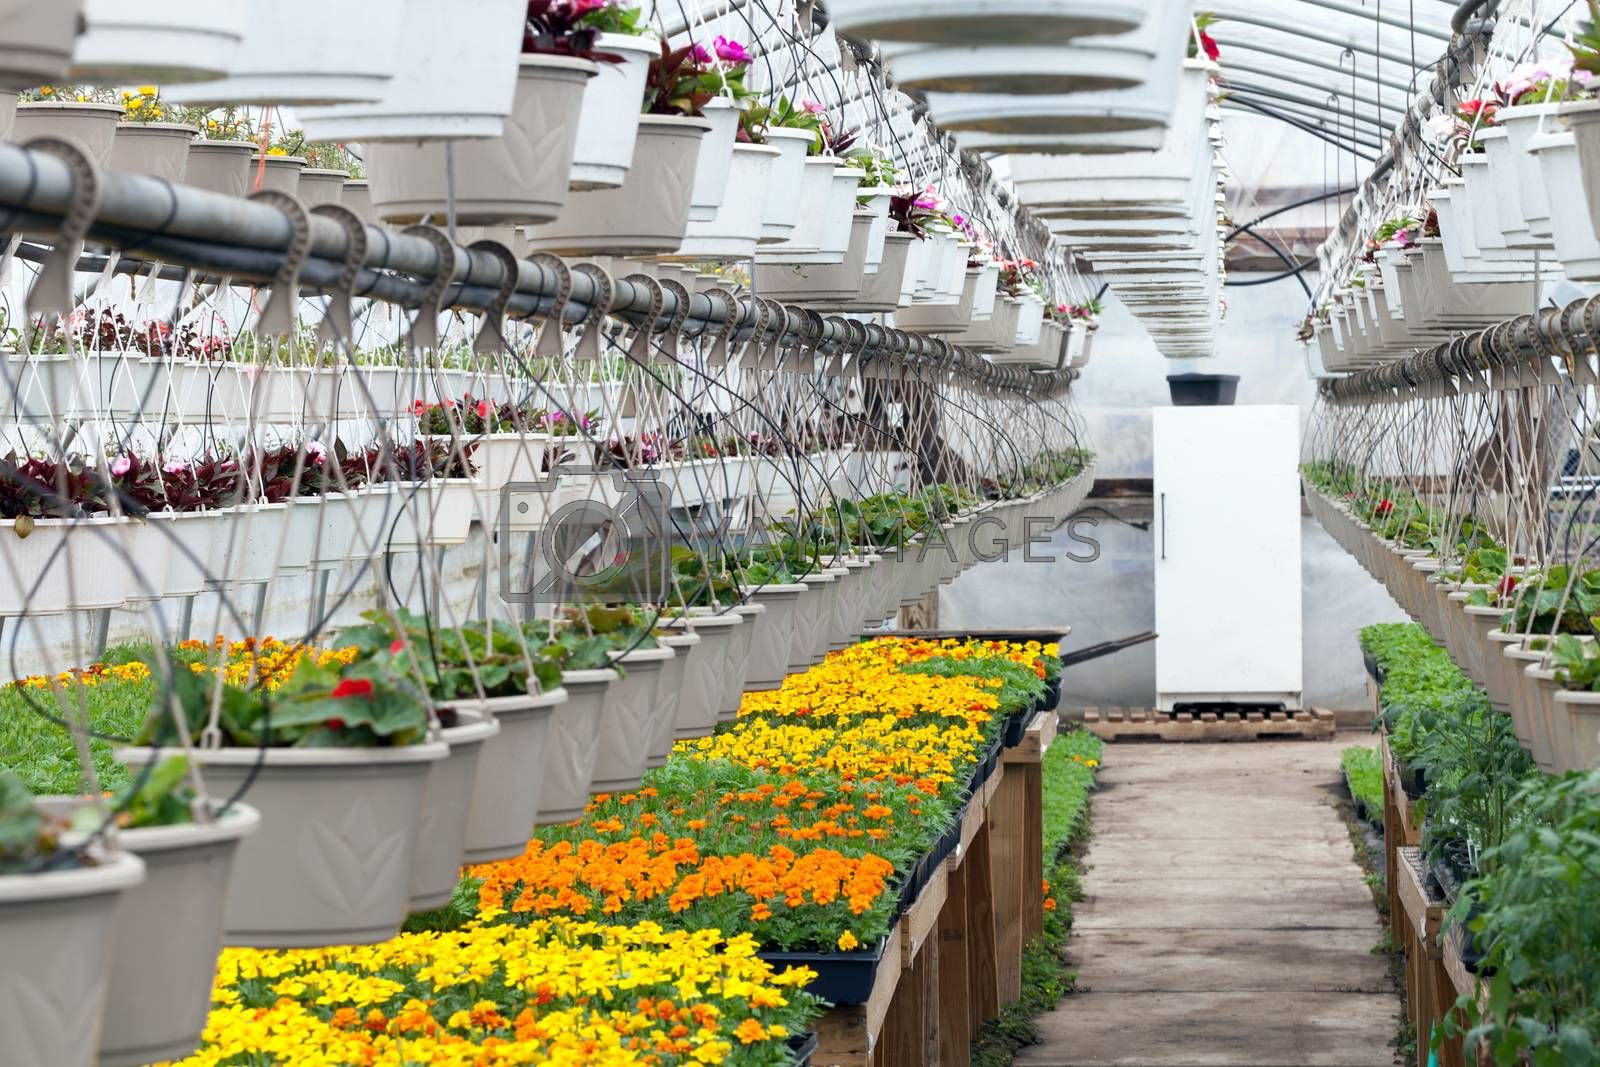 Greenhouse Nursery Flowers by graficallyminded